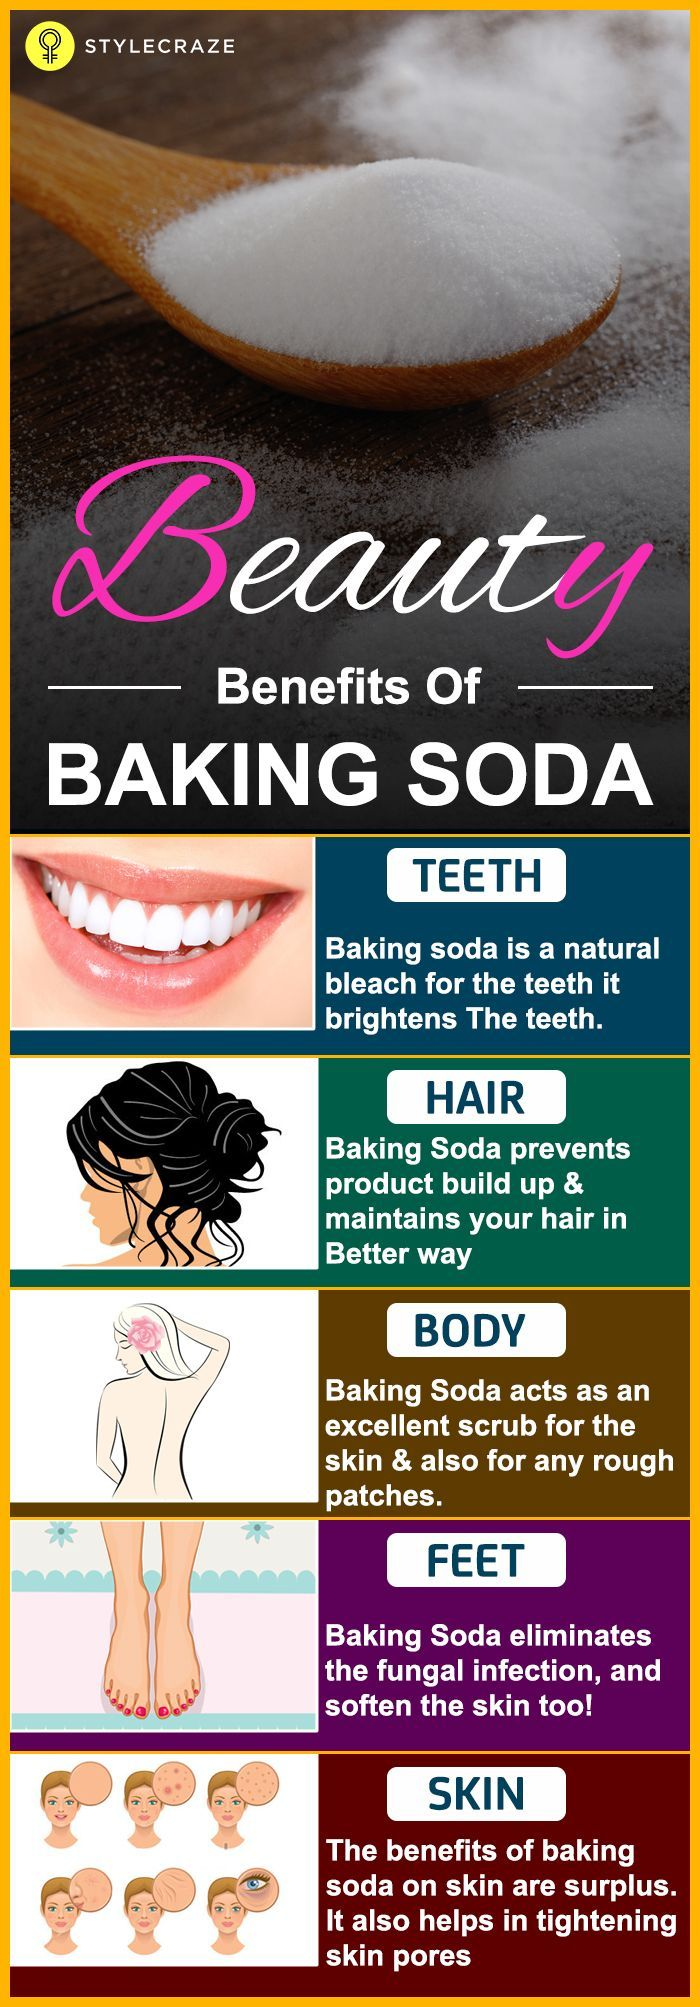 Baking soda has been used in skin-care for quite a long time. It is an exfoliator, a skin brightener, and to even out complexion. It is a natural, effective and budget-friendly way to help with many beauty related issues. Here…